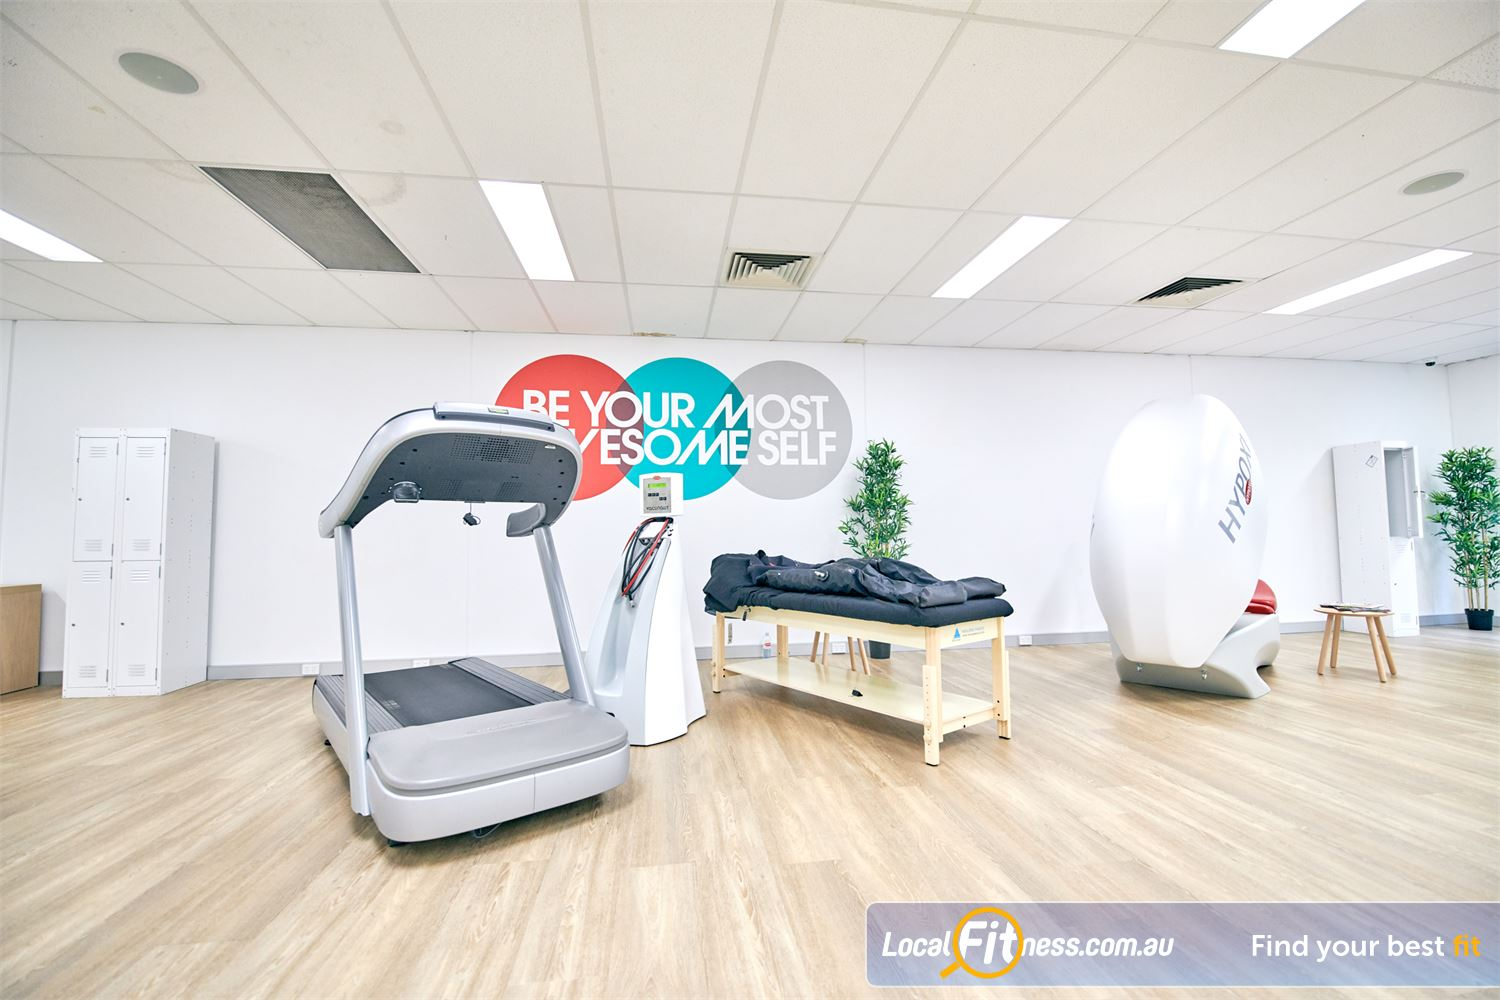 HYPOXI Weight Loss Near Zetland Our HYPOXI Waterloo weight-loss is personalised catering for 3-4 people at a time.